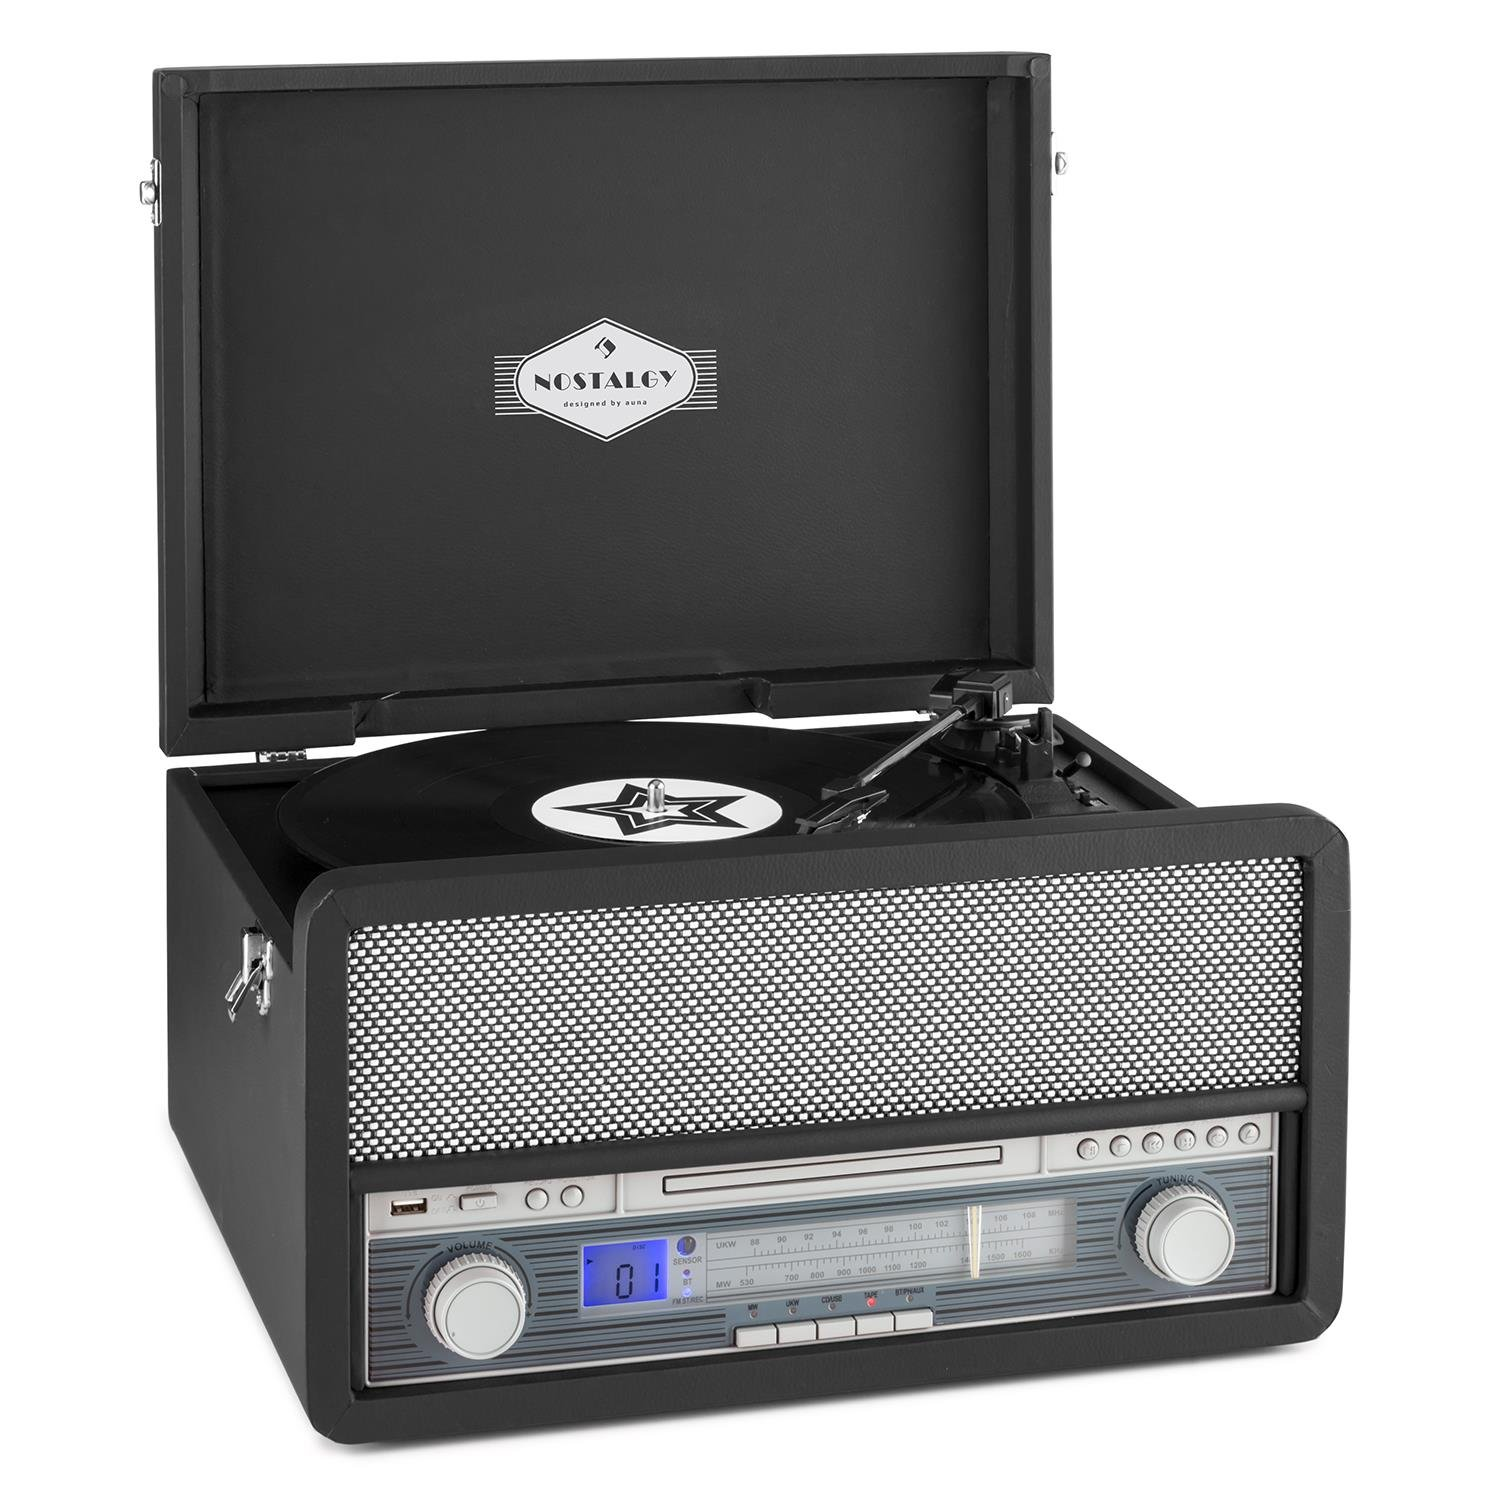 auna Epoque tocadiscos minicadena retro con Bluetooth USB radio FM AM reproductor